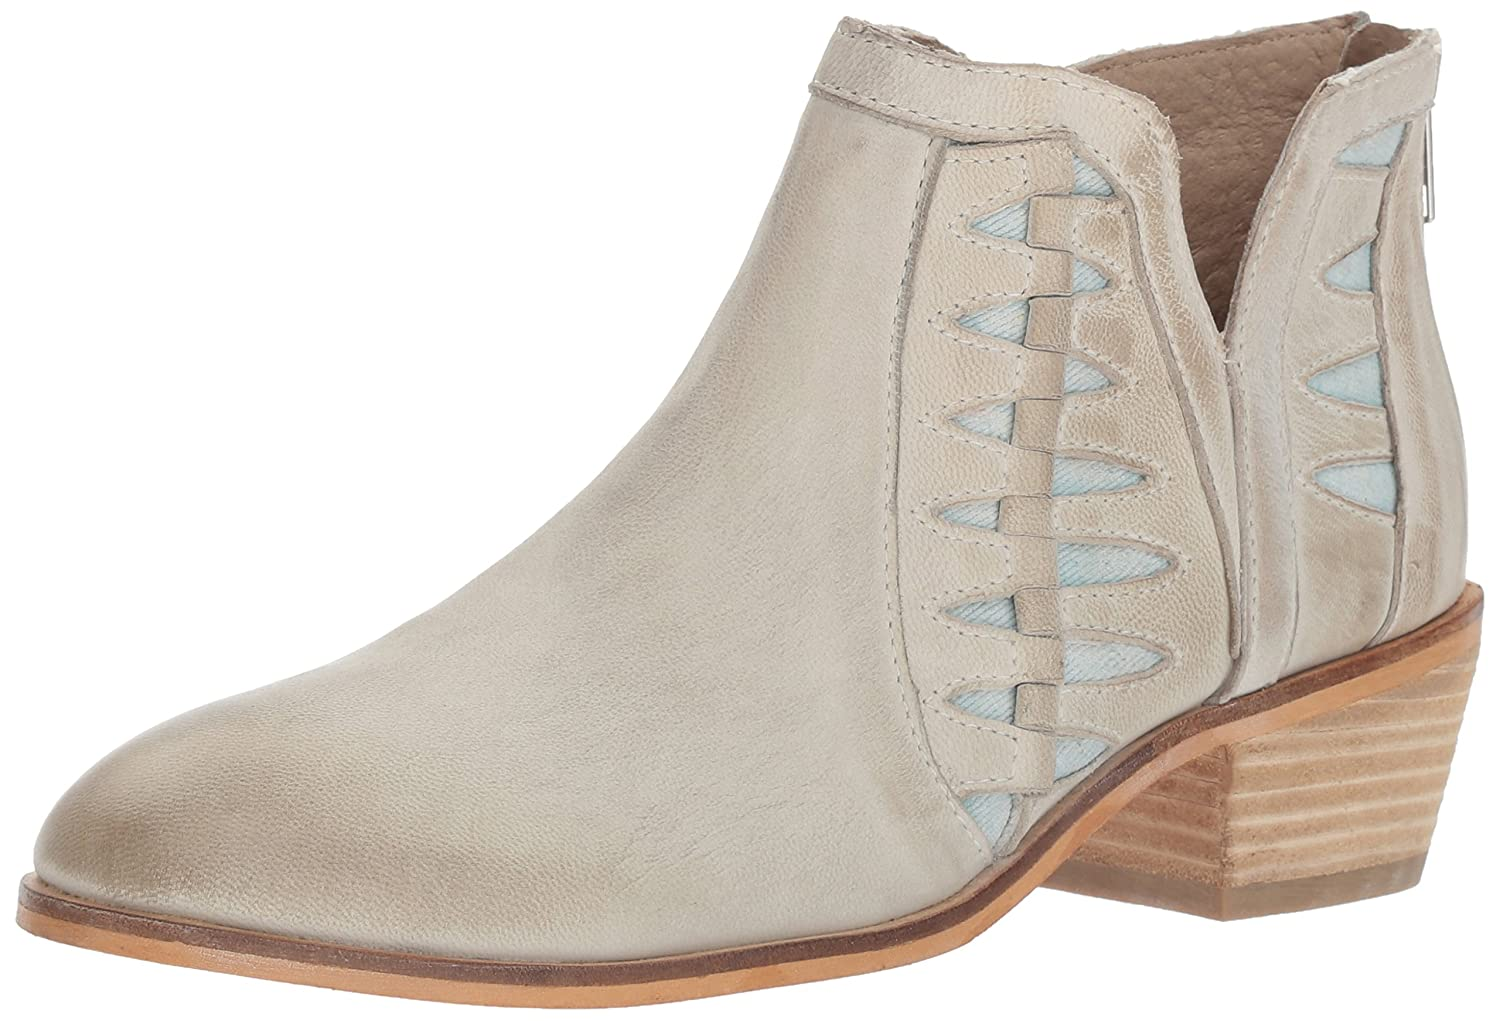 Charles by Charles David Women's Yuma Ankle Boot B06XKK1RXW 11 B(M) US|White